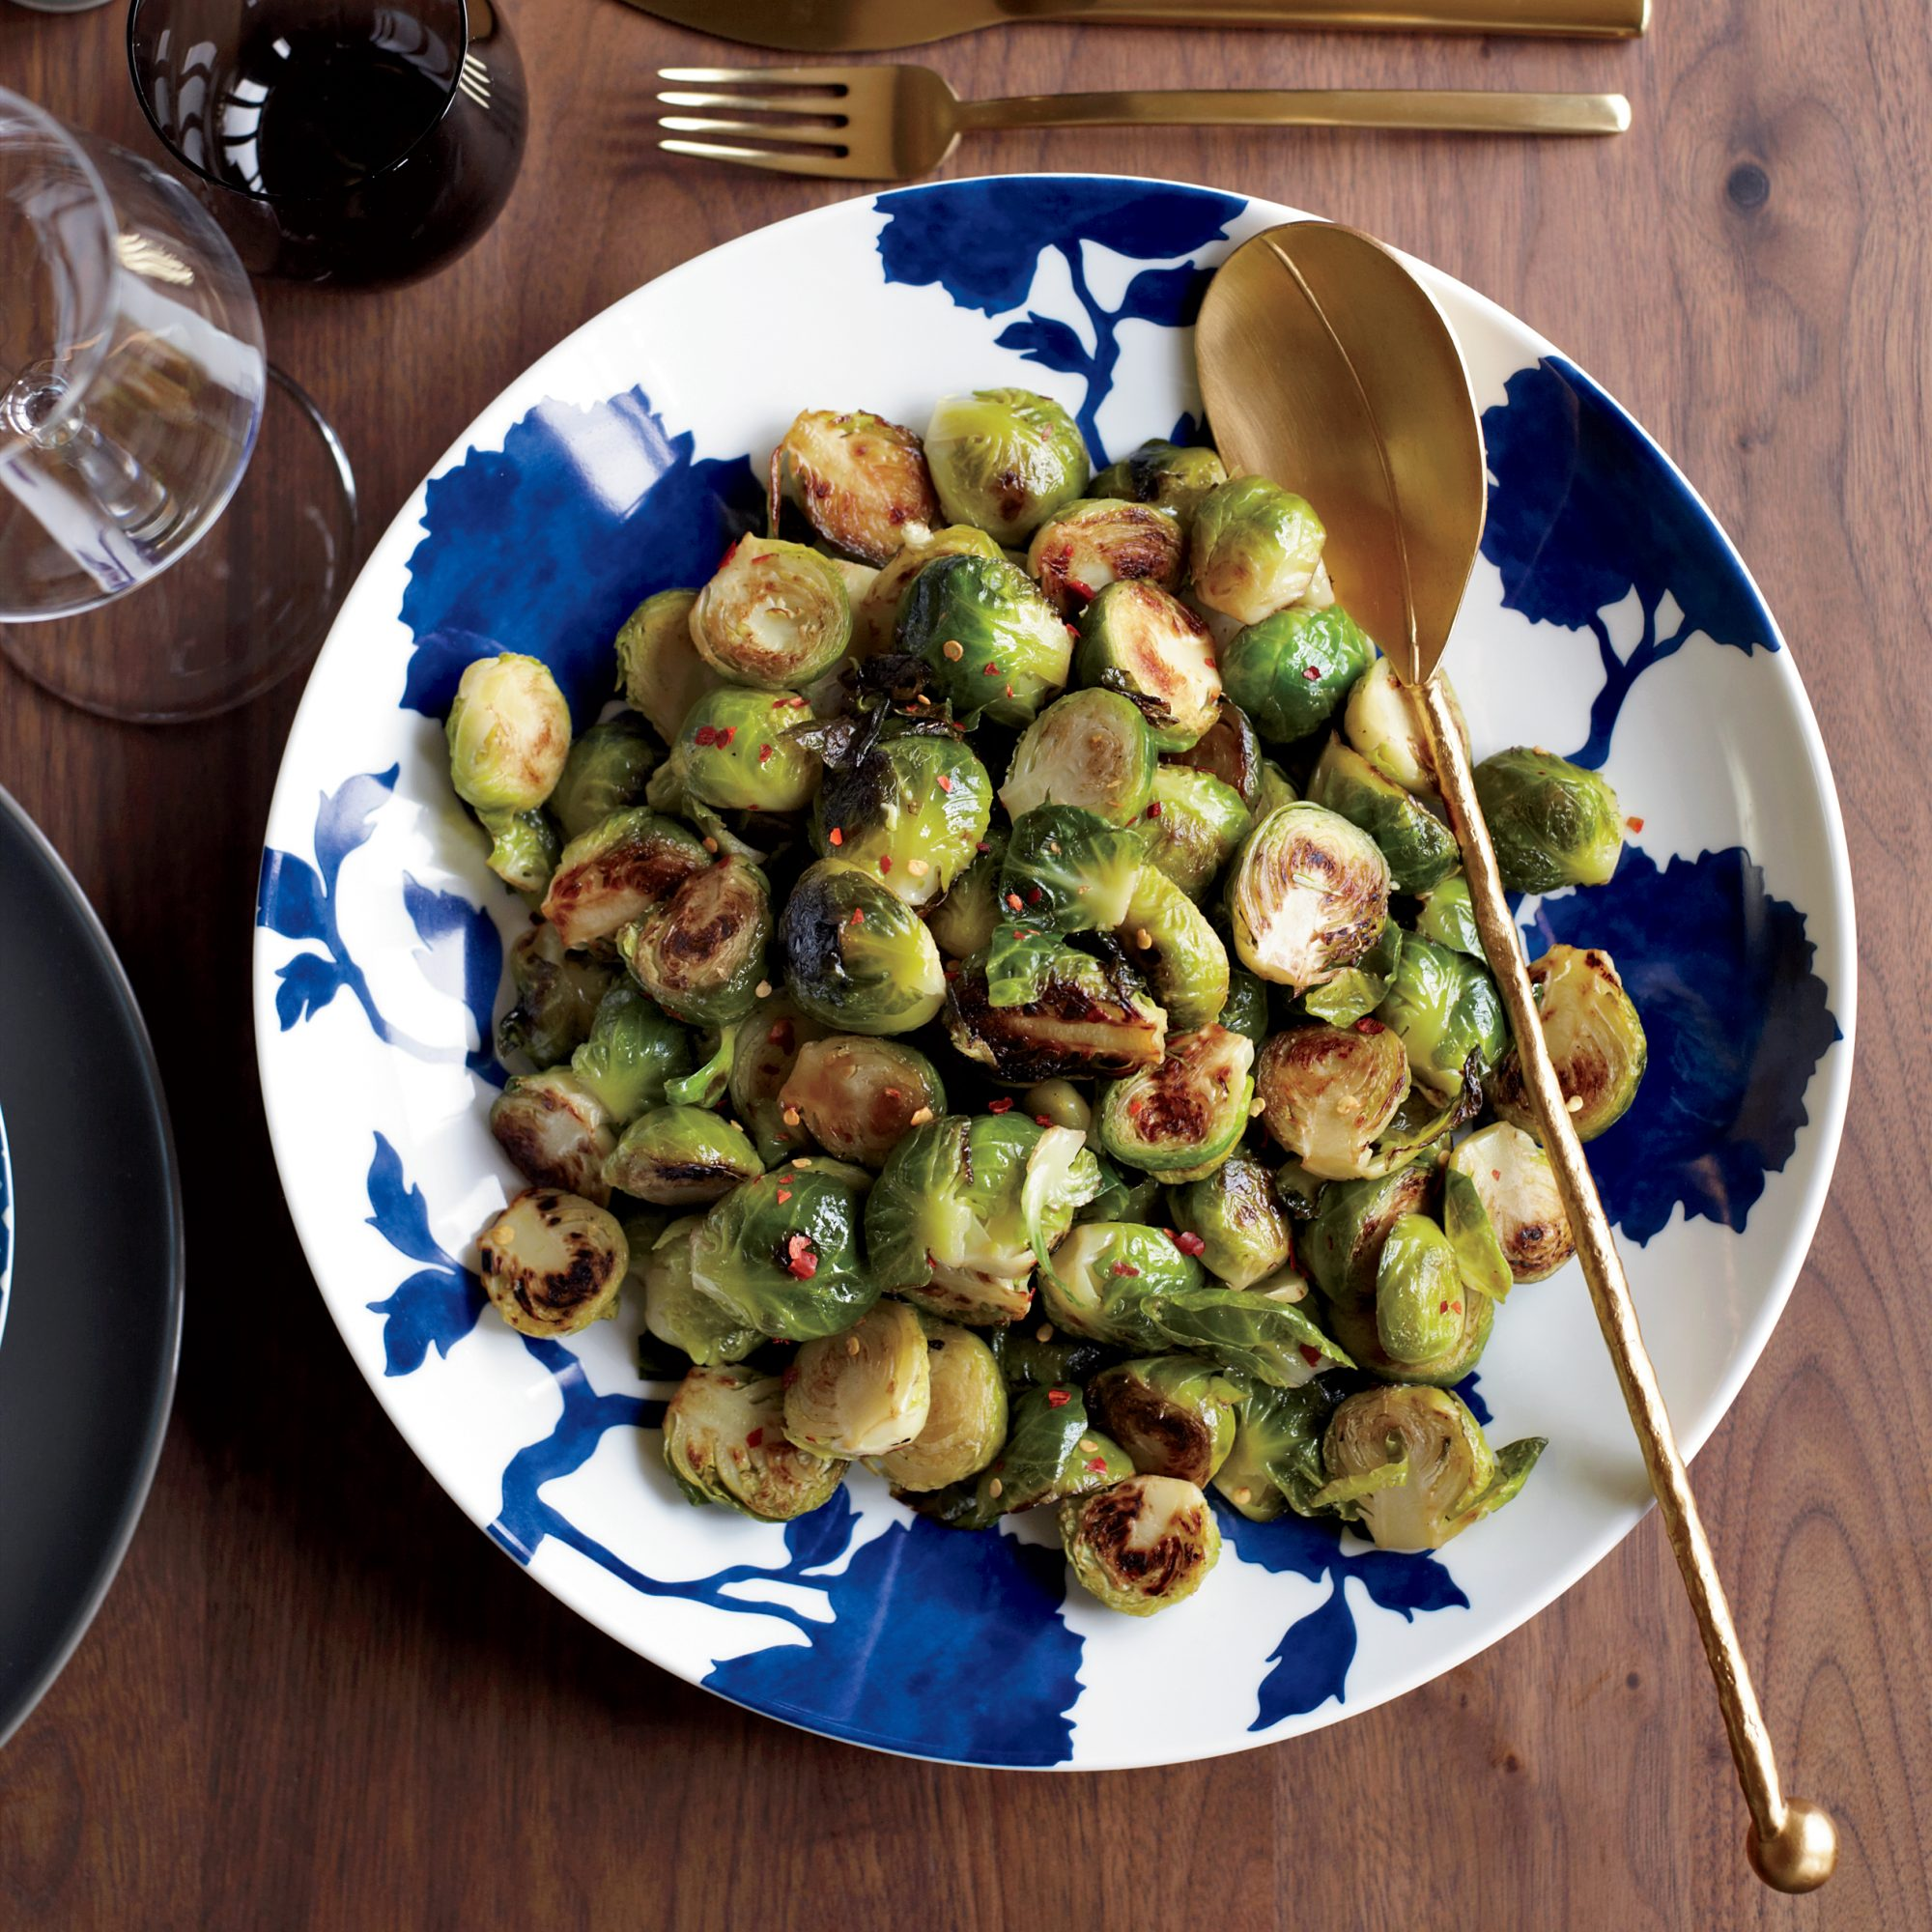 Spicy-and-Garlicky Brussels Sprouts